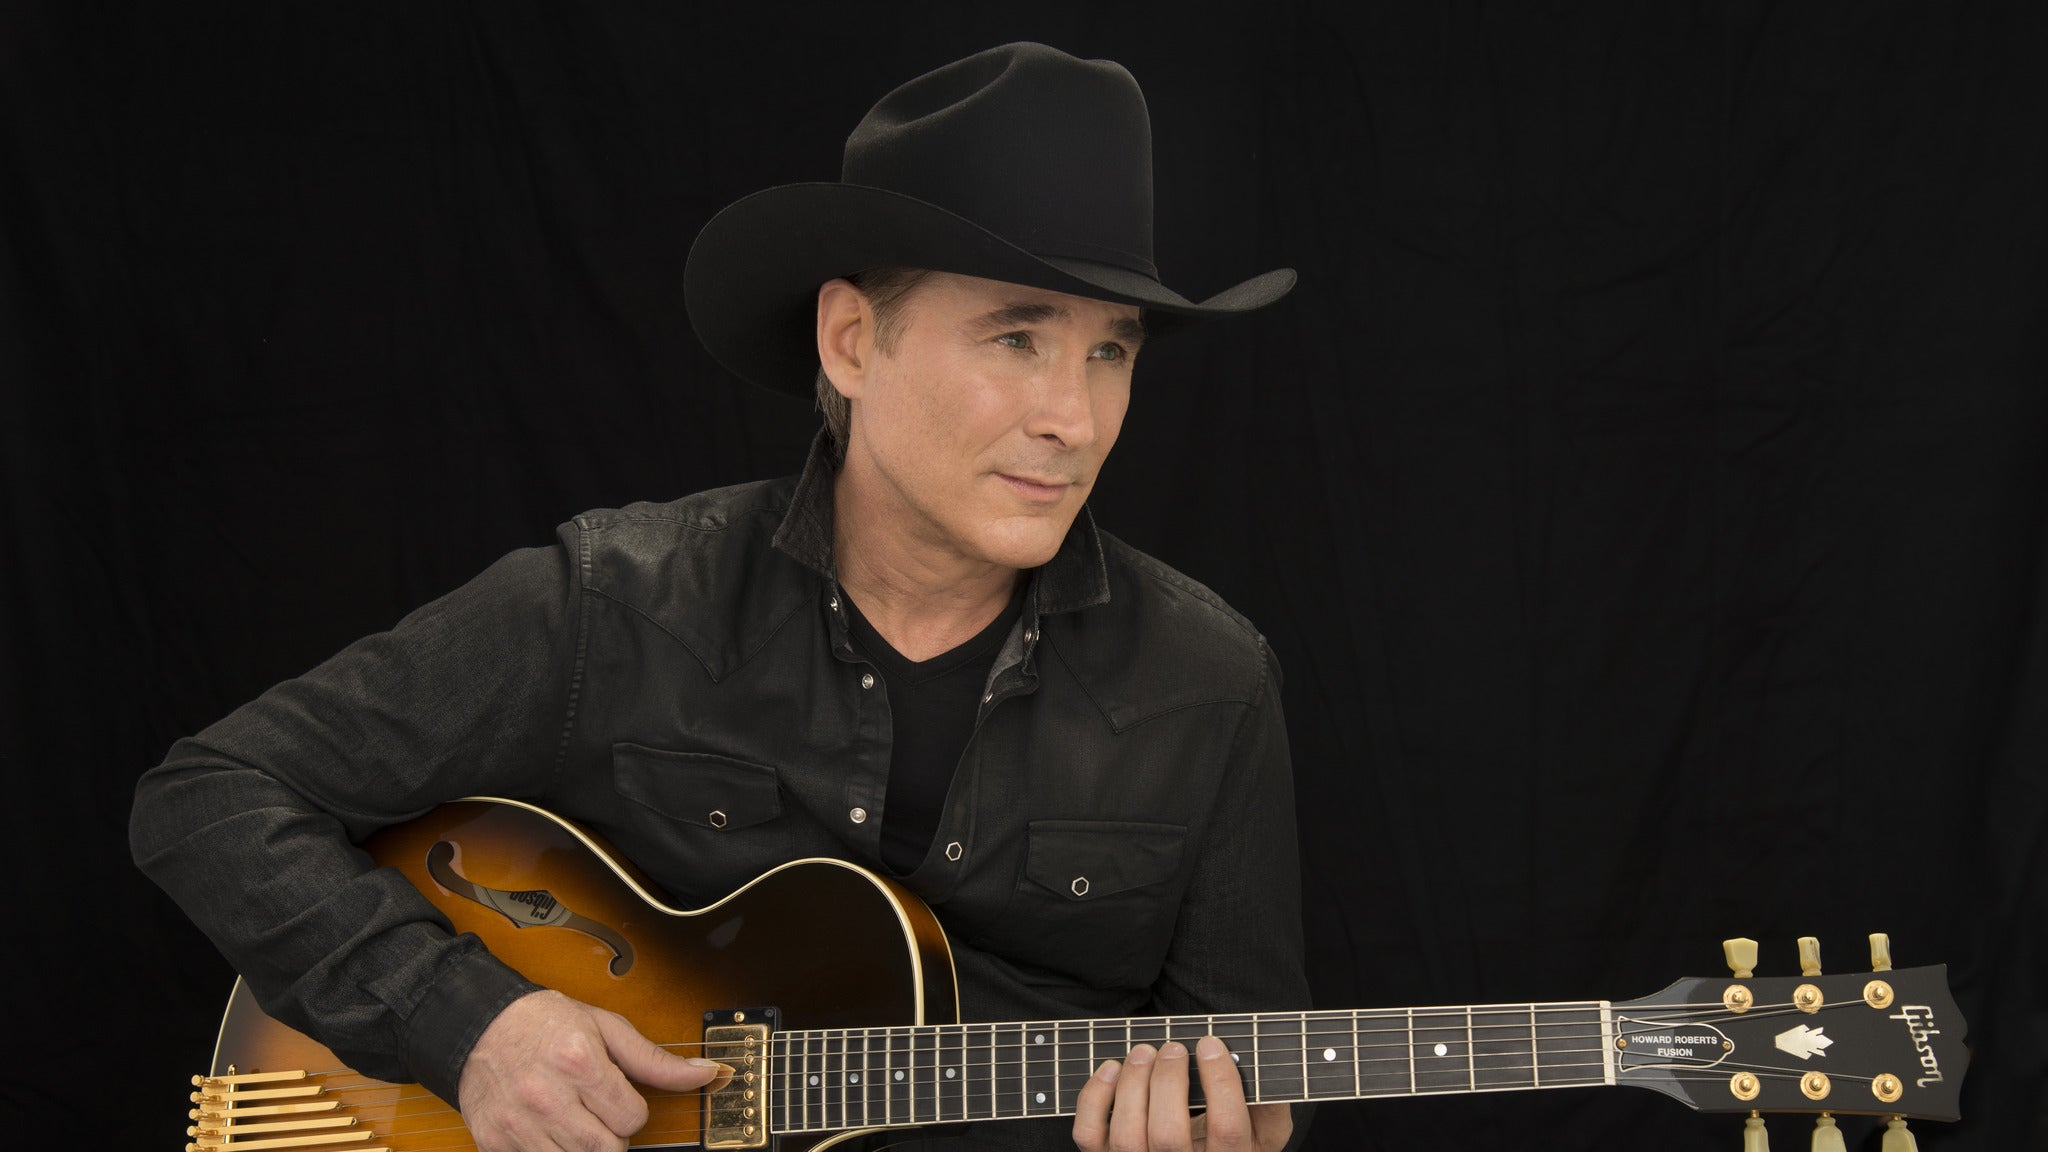 Clint Black & Trace Adkins – Hits. Hats. History